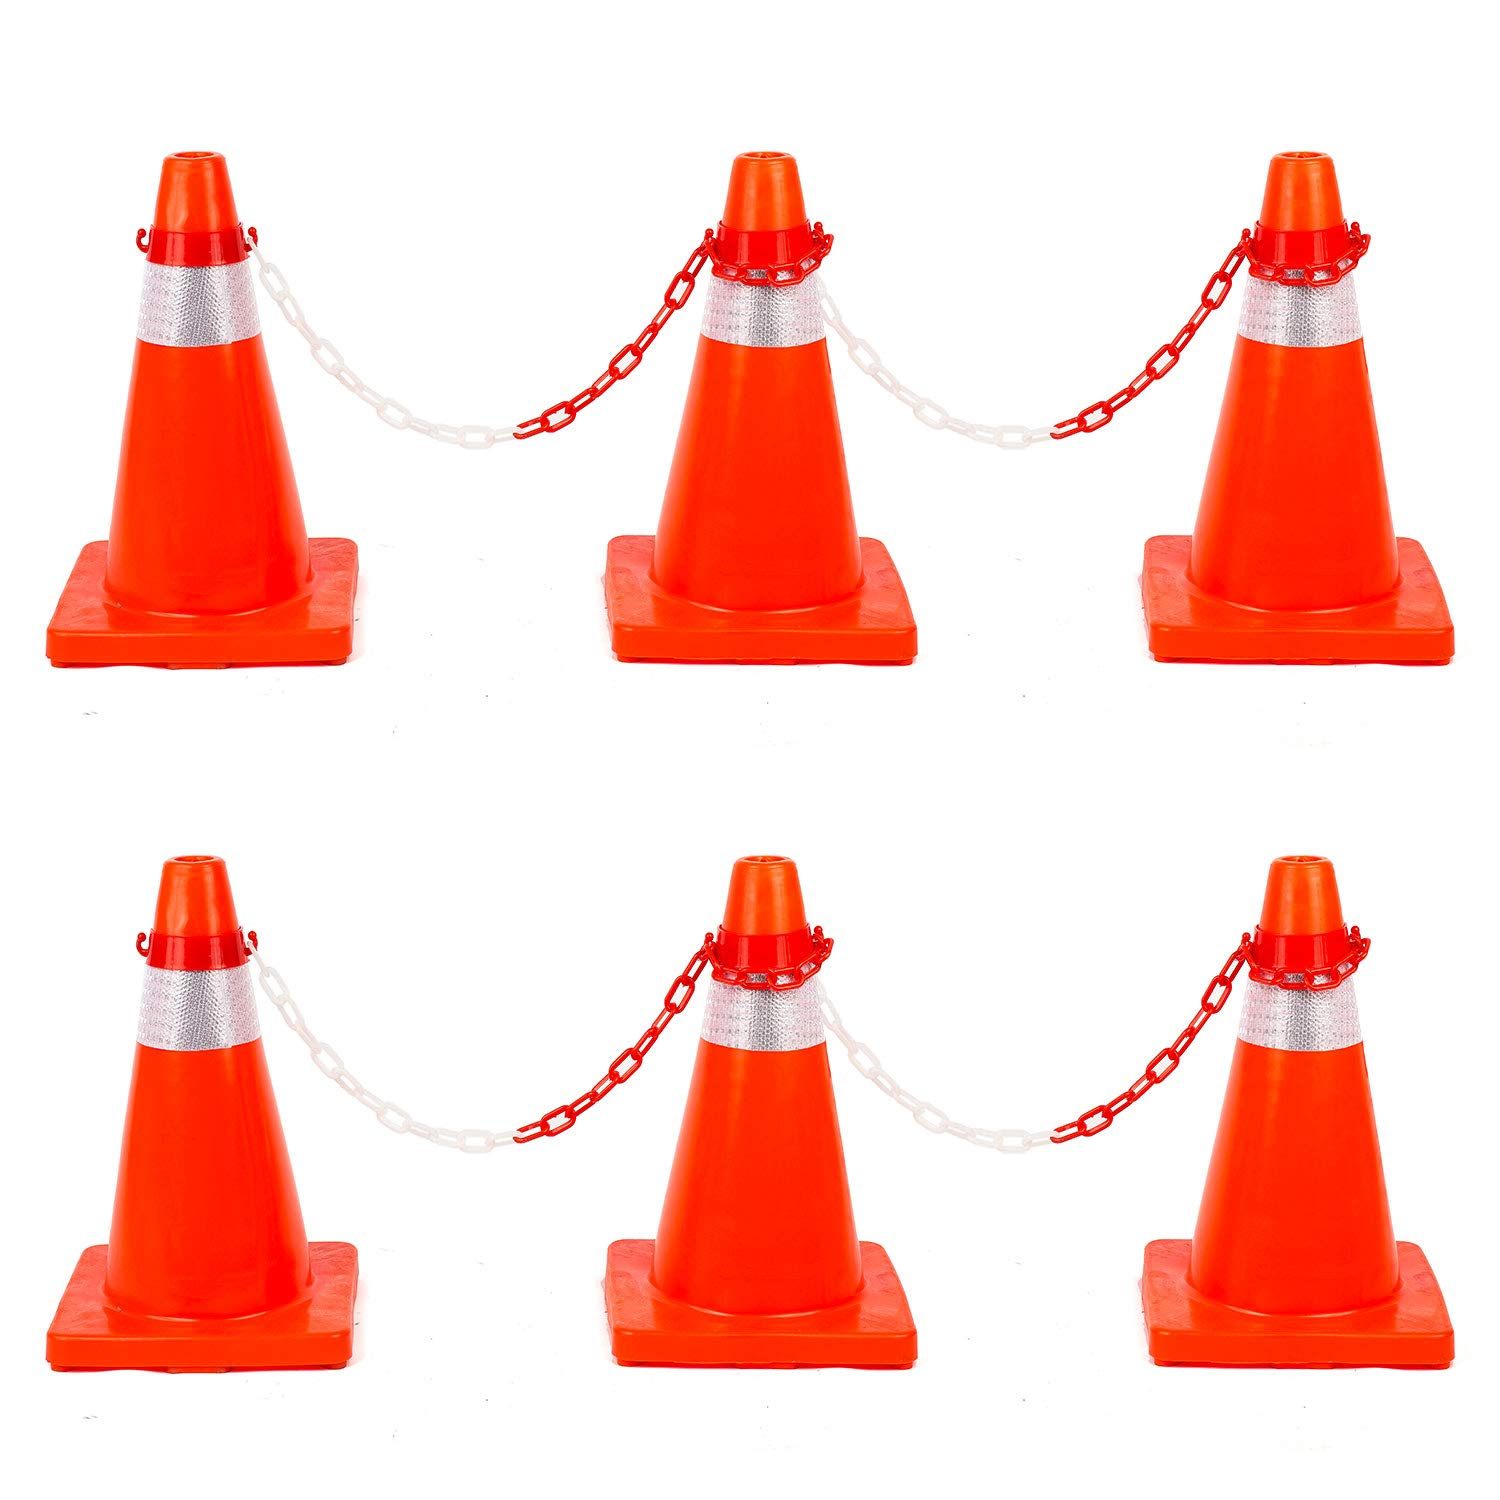 12PCS Traffic Safety Cones 18inches with Reflective Collars PVC Unbreakable Orange Construction for Home Road Parking